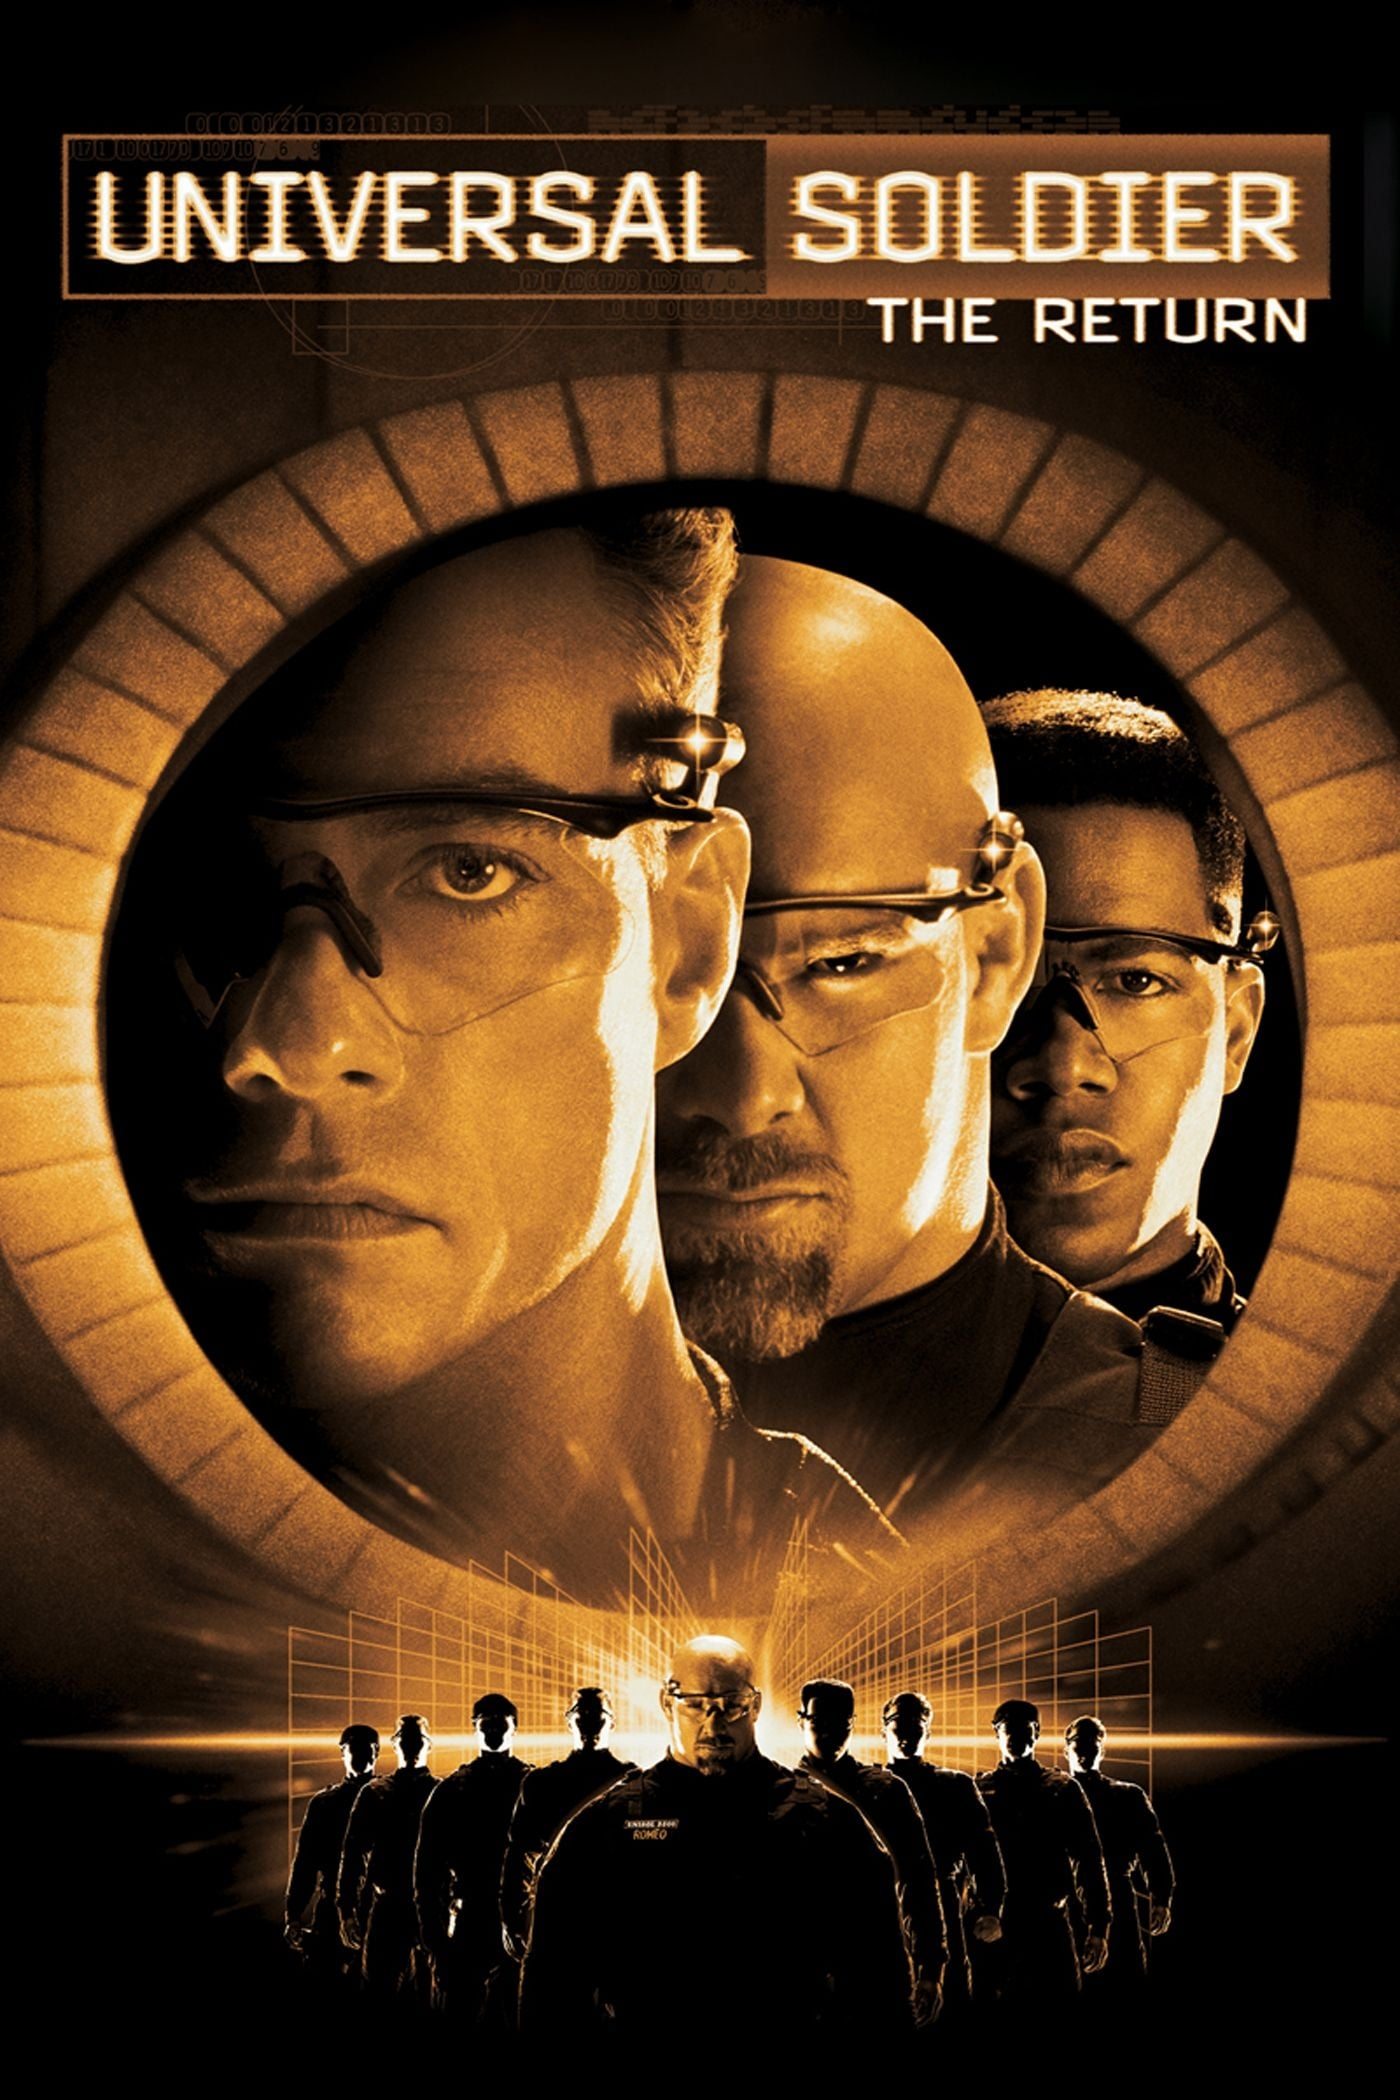 Universal Soldier: The Return (1999)